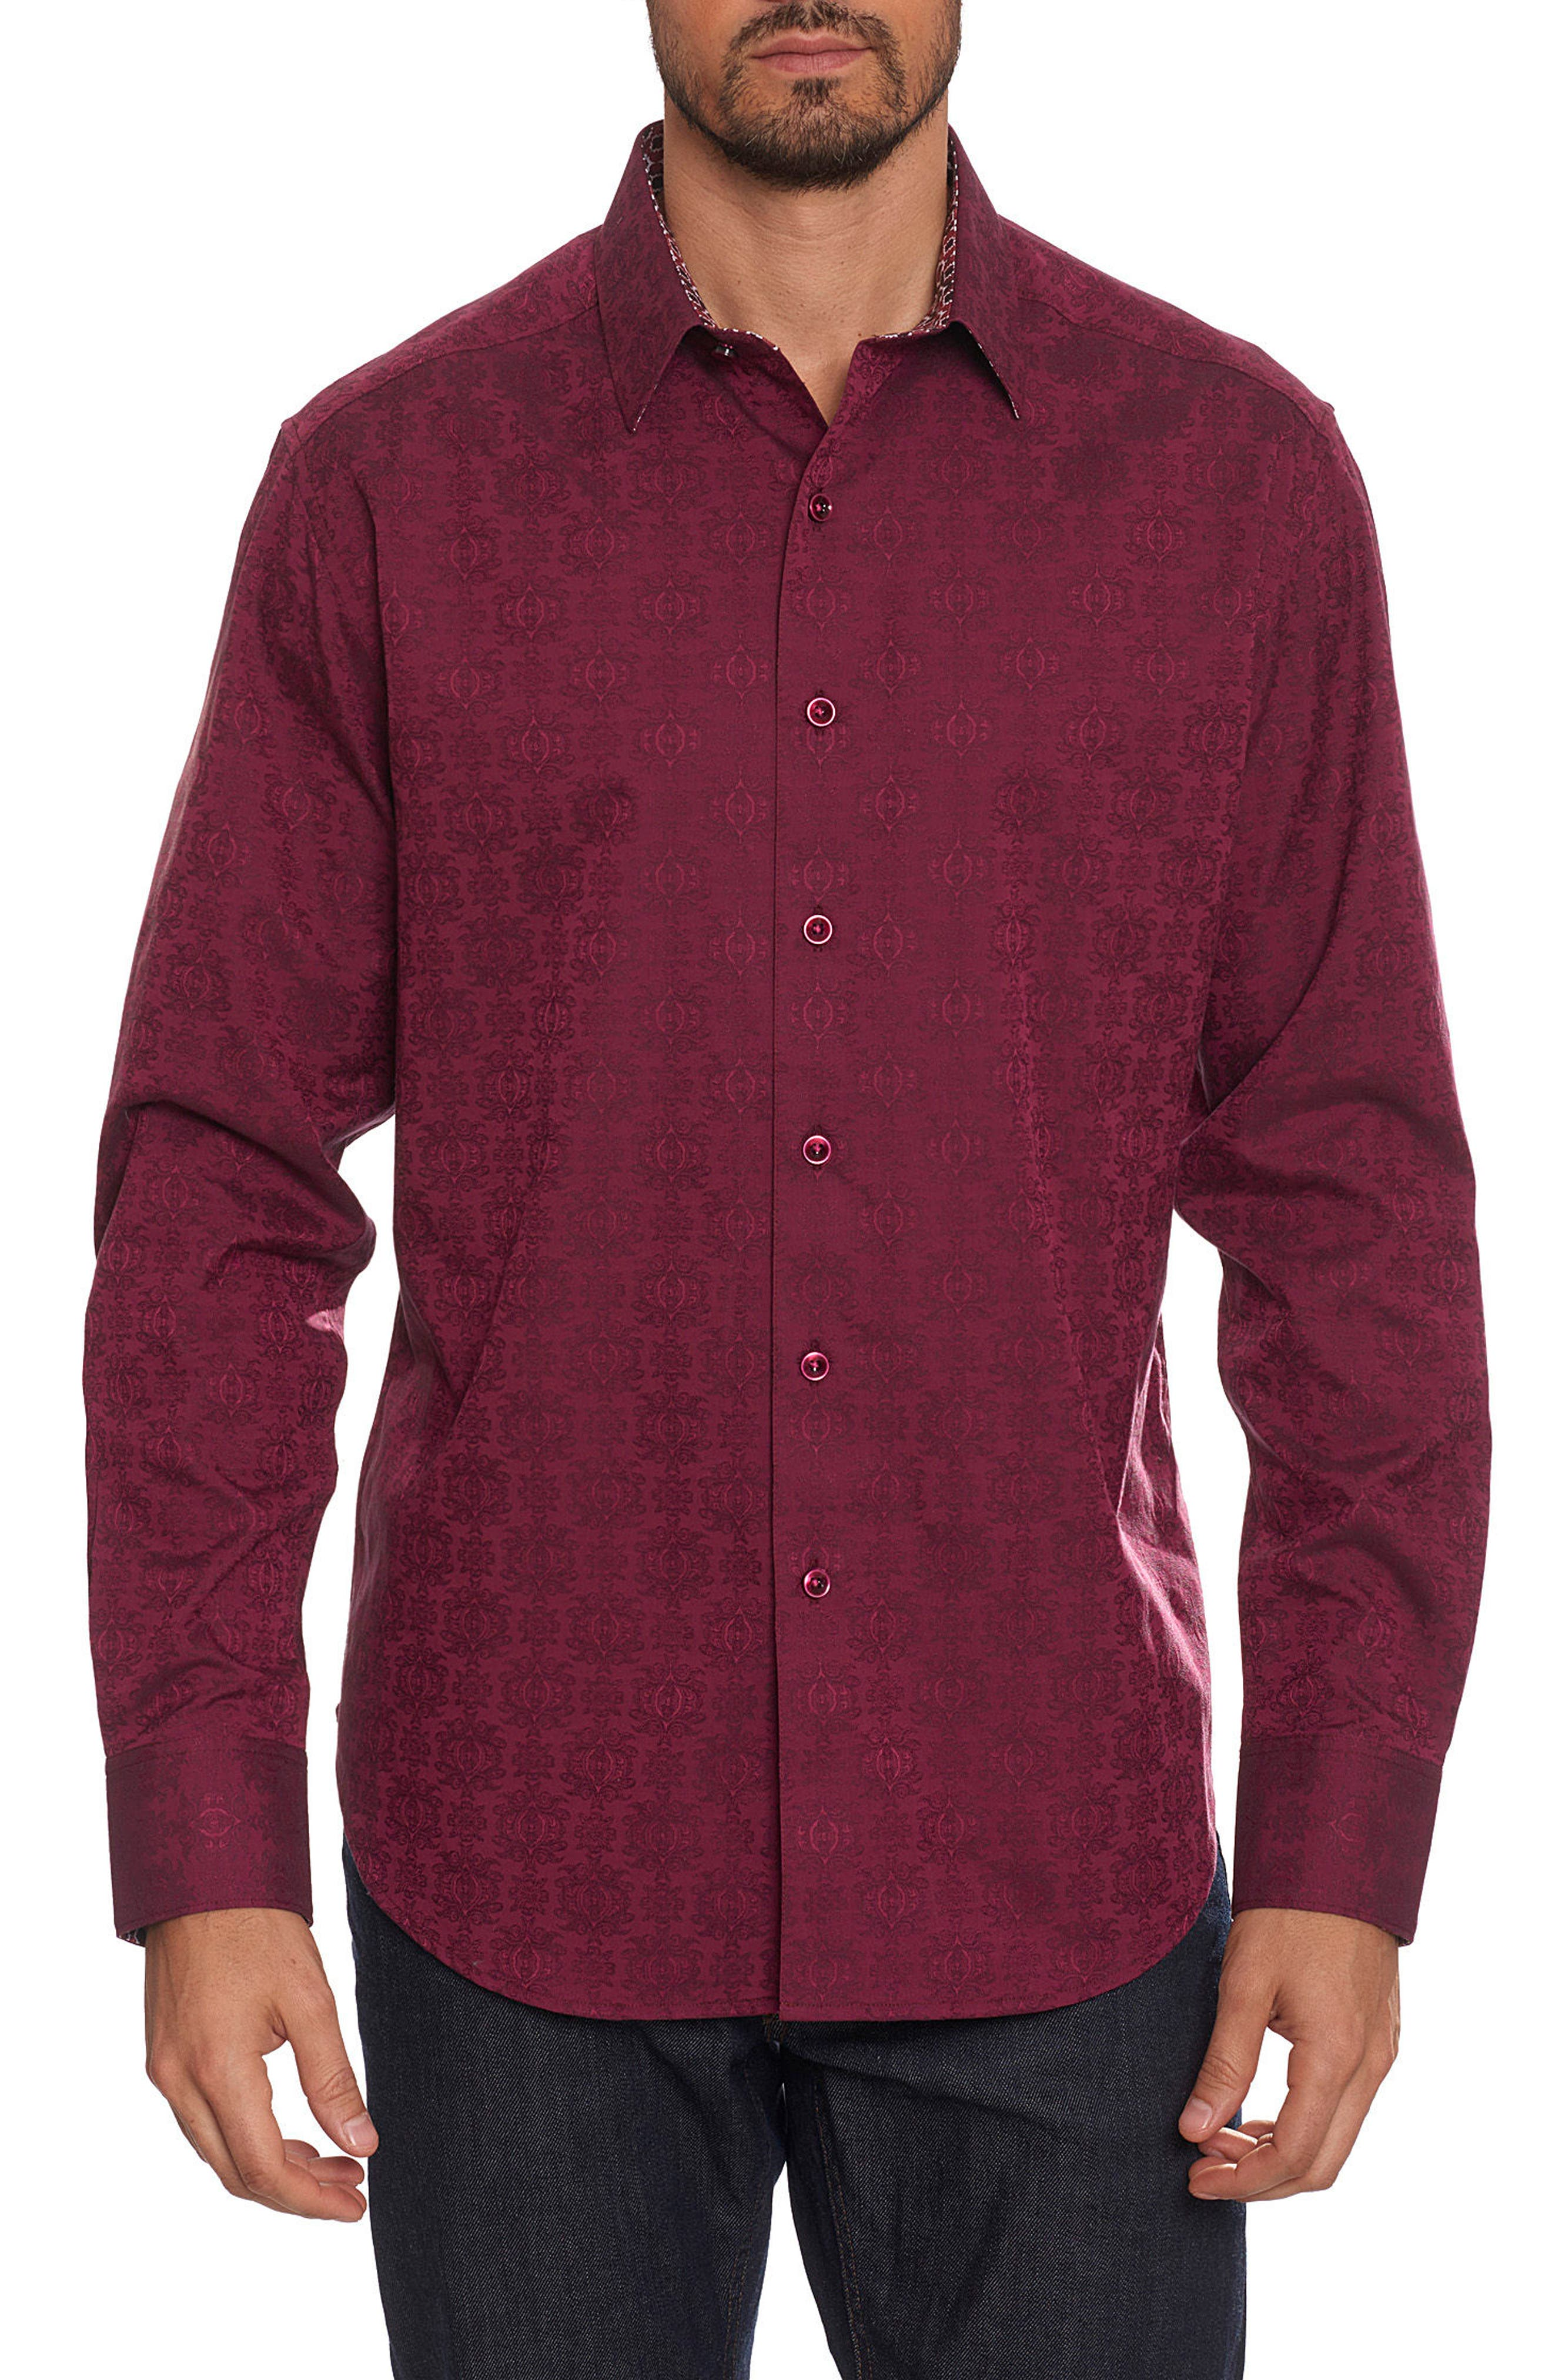 Alternate Image 1 Selected - Robert Graham 'Cullen' Classic Fit Jacquard Sport Shirt